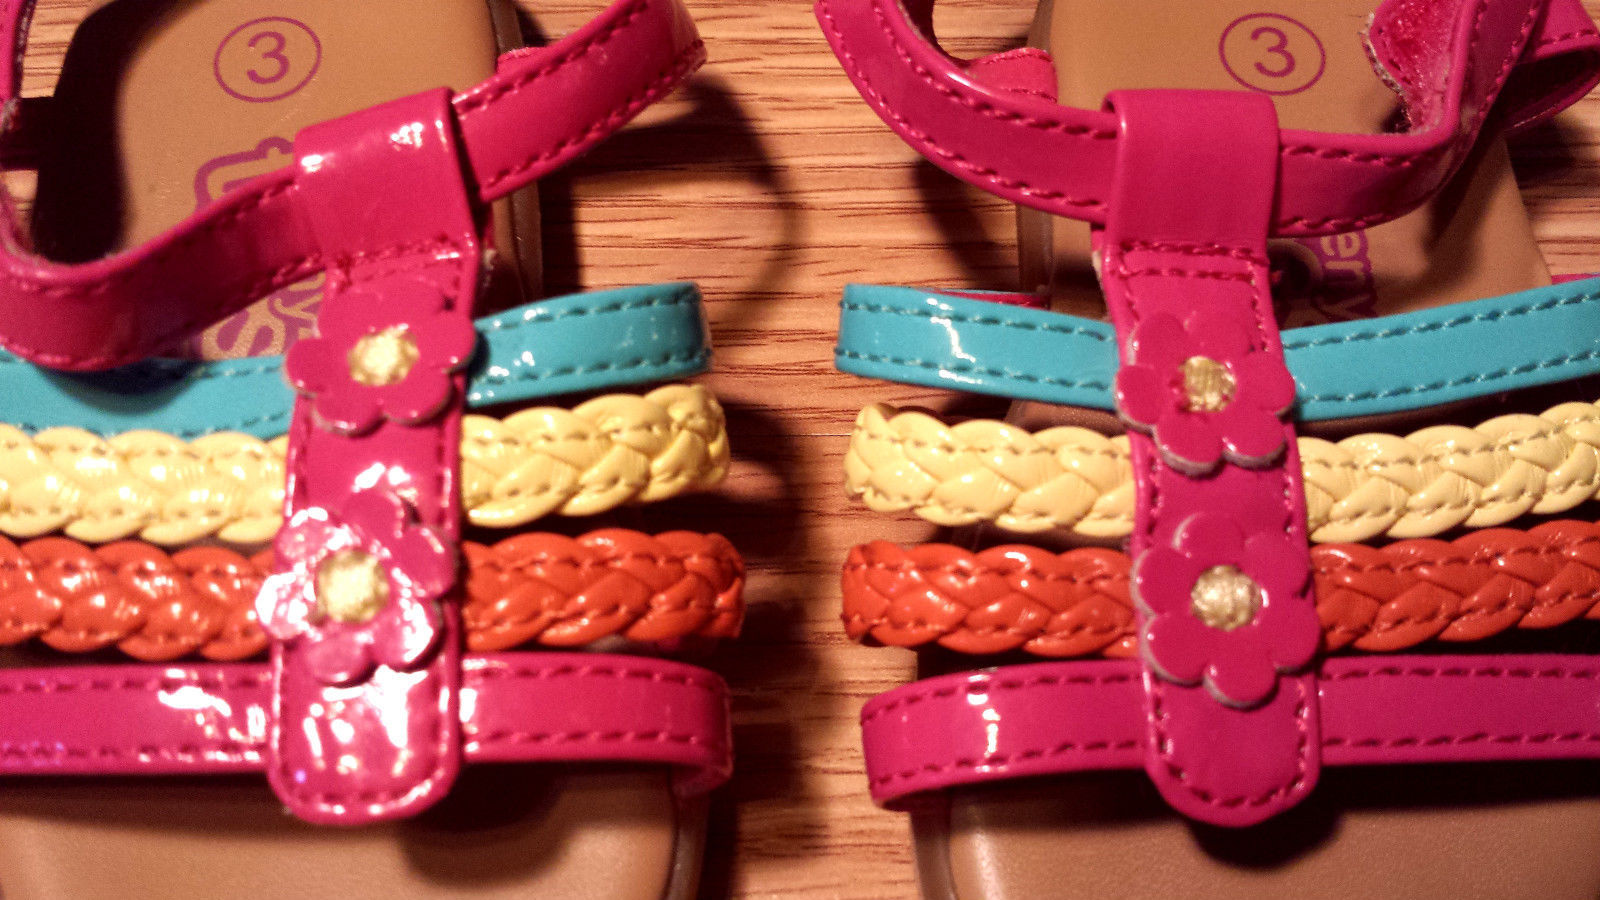 NWOT Girl's Size 3 Pink/ Orange/ Yellow/ Blue Teeny Toes Baby Infant Sandals